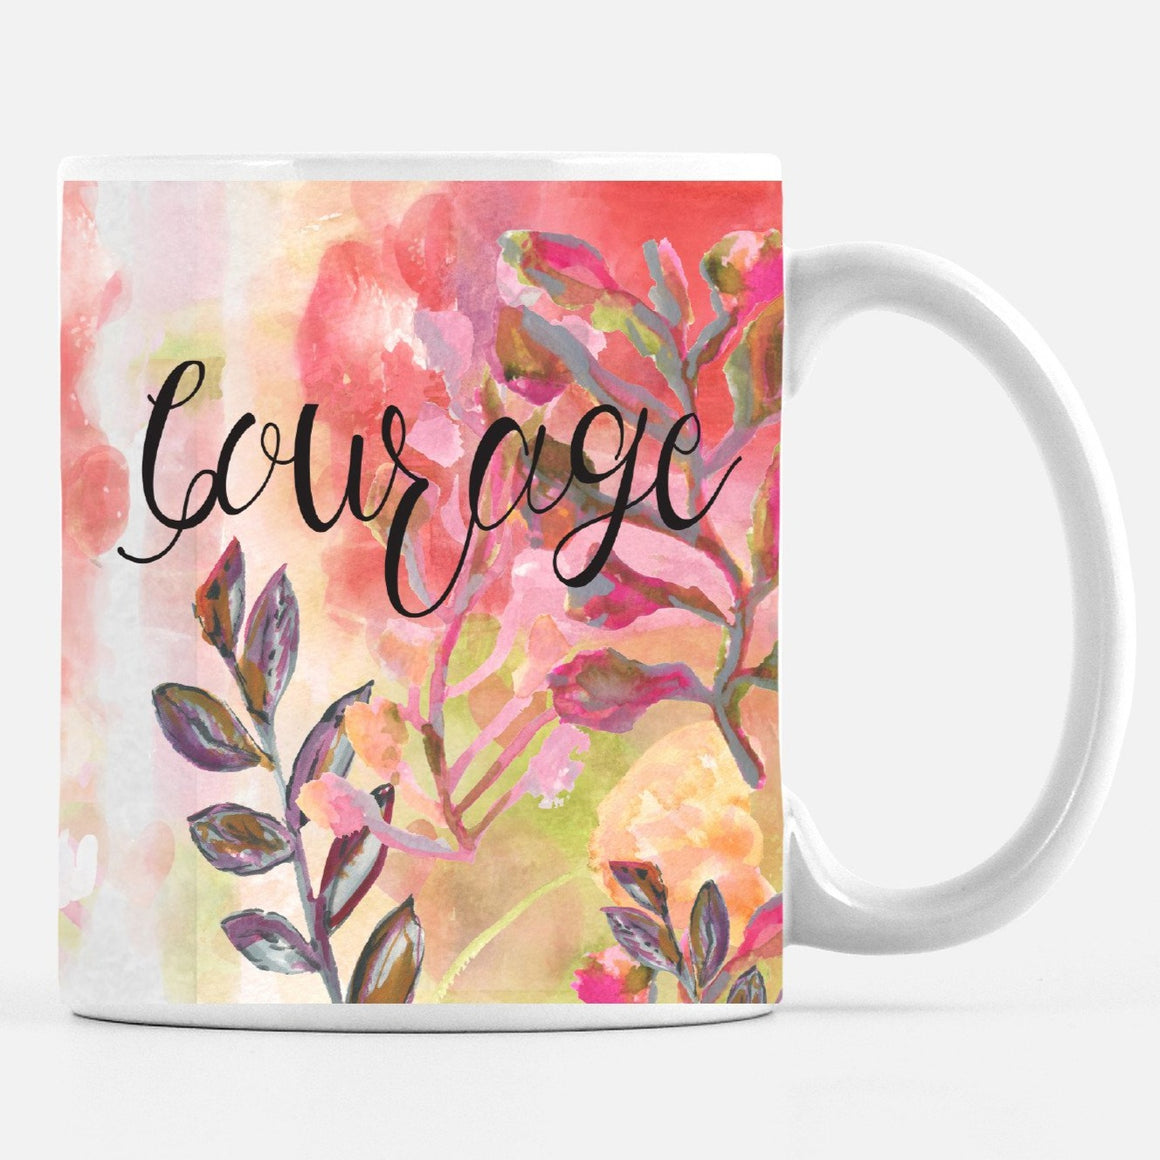 Courage 15 Ounce Large Ceramic Mug - Mugs - Dreams After All